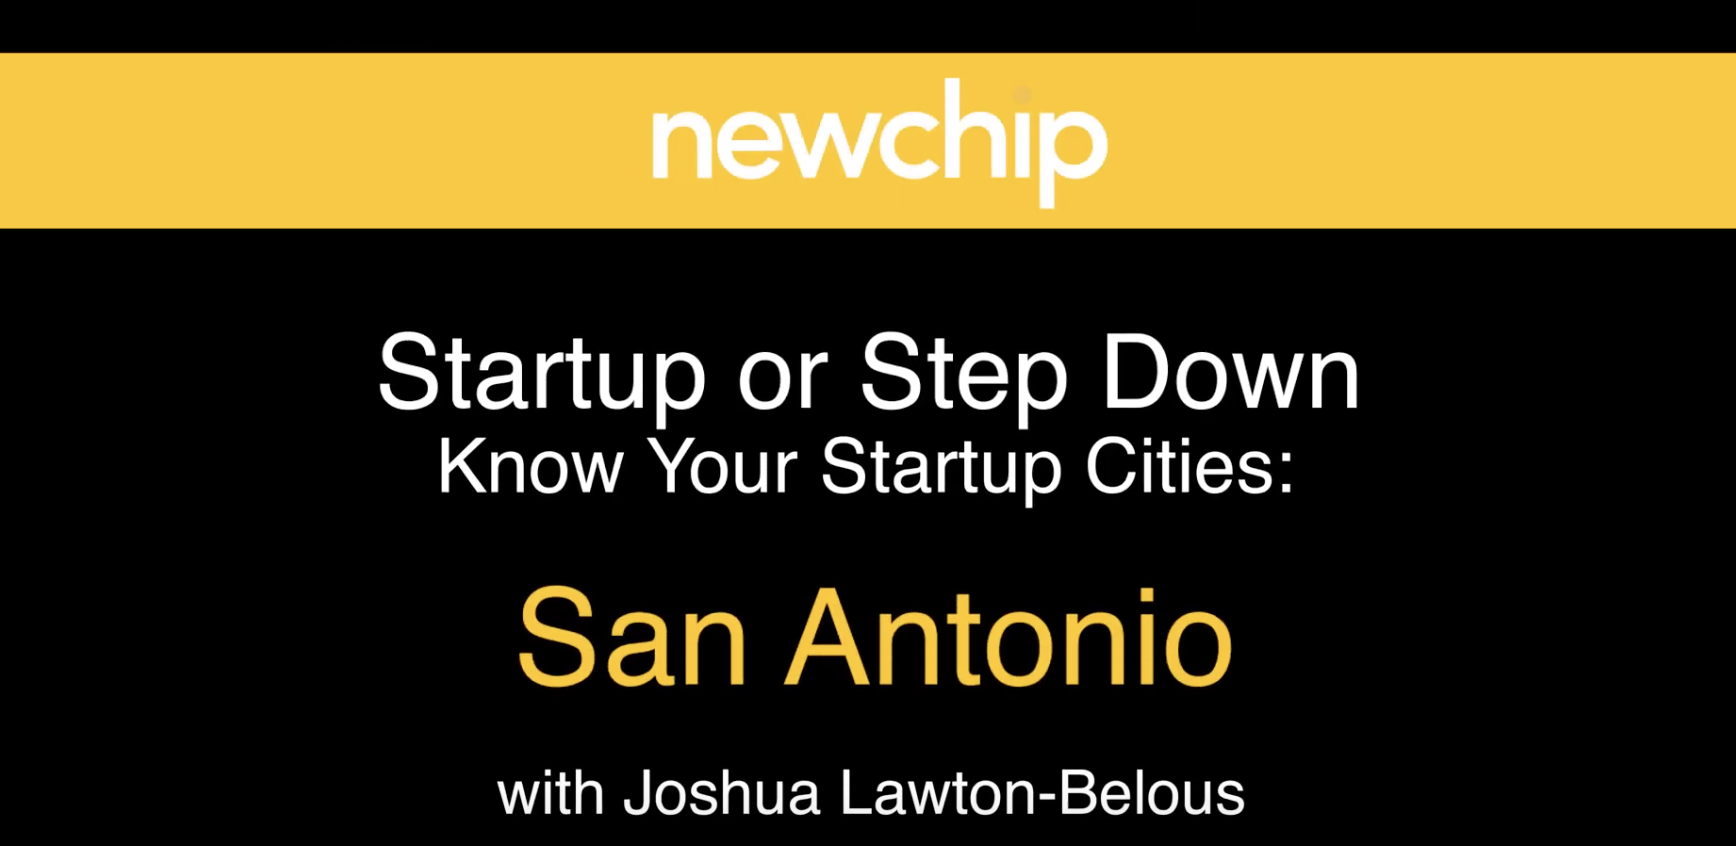 Newchip Startup City Video Highlights San Antonio